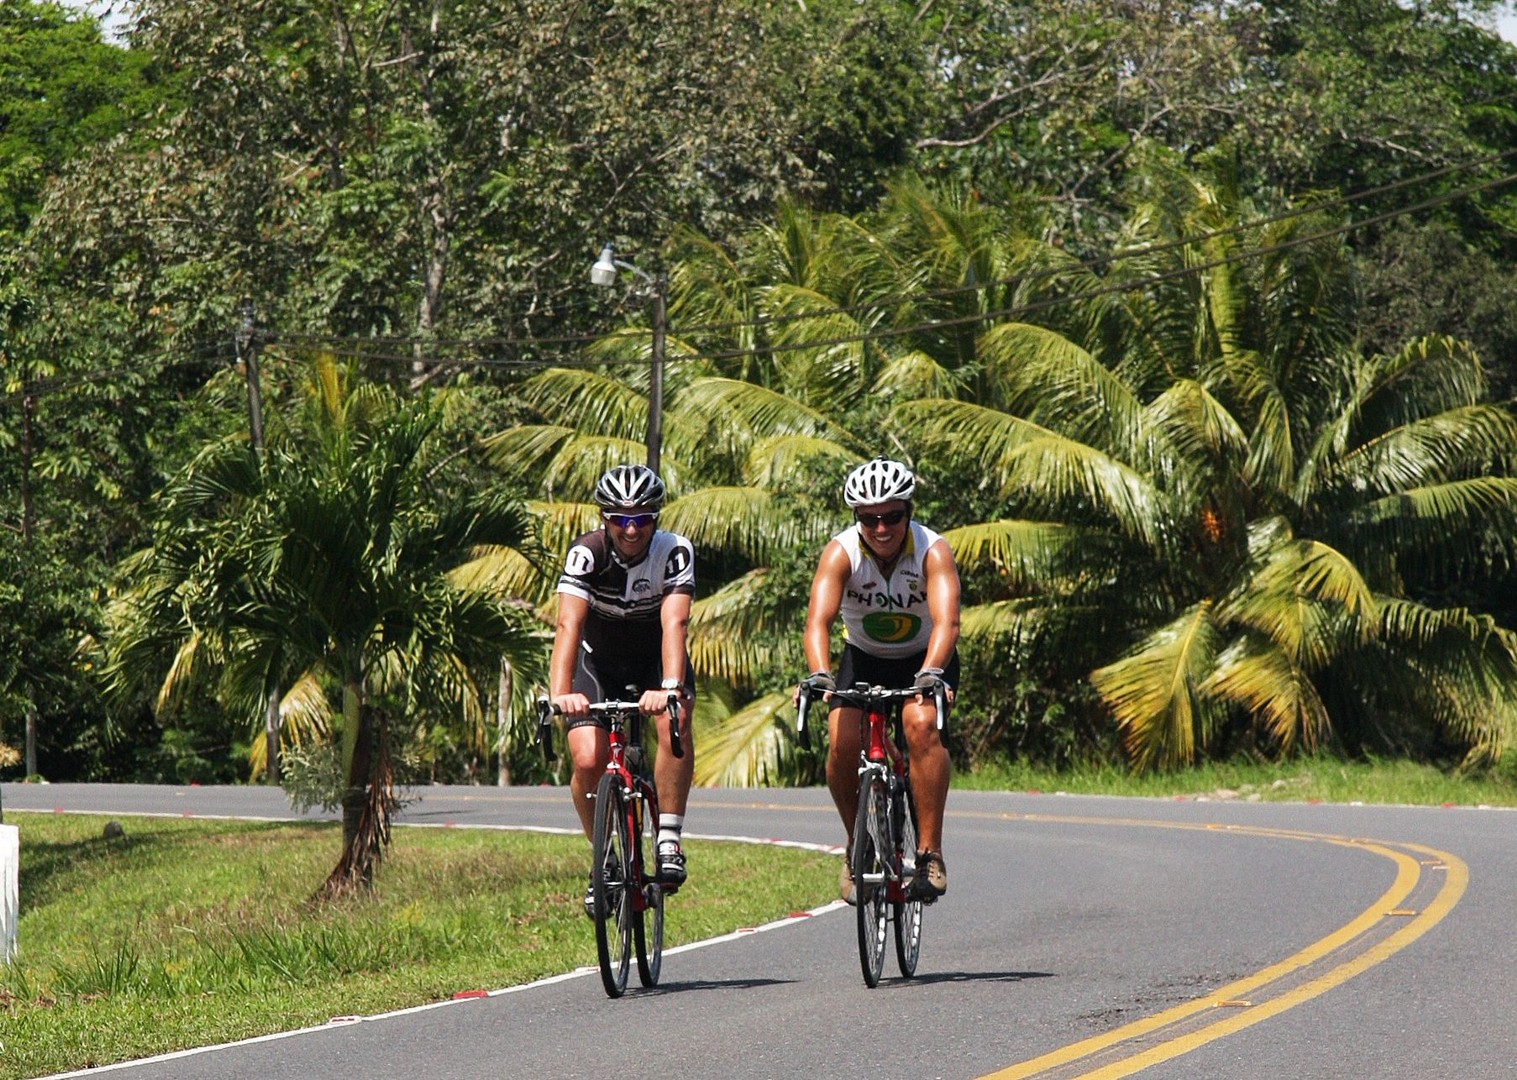 road-cycling-holiday-in-costa-rica-skedaddle-central-america.jpg - Costa Rica - Ruta de los Volcanes - Guided Road Cycling Holiday - Road Cycling